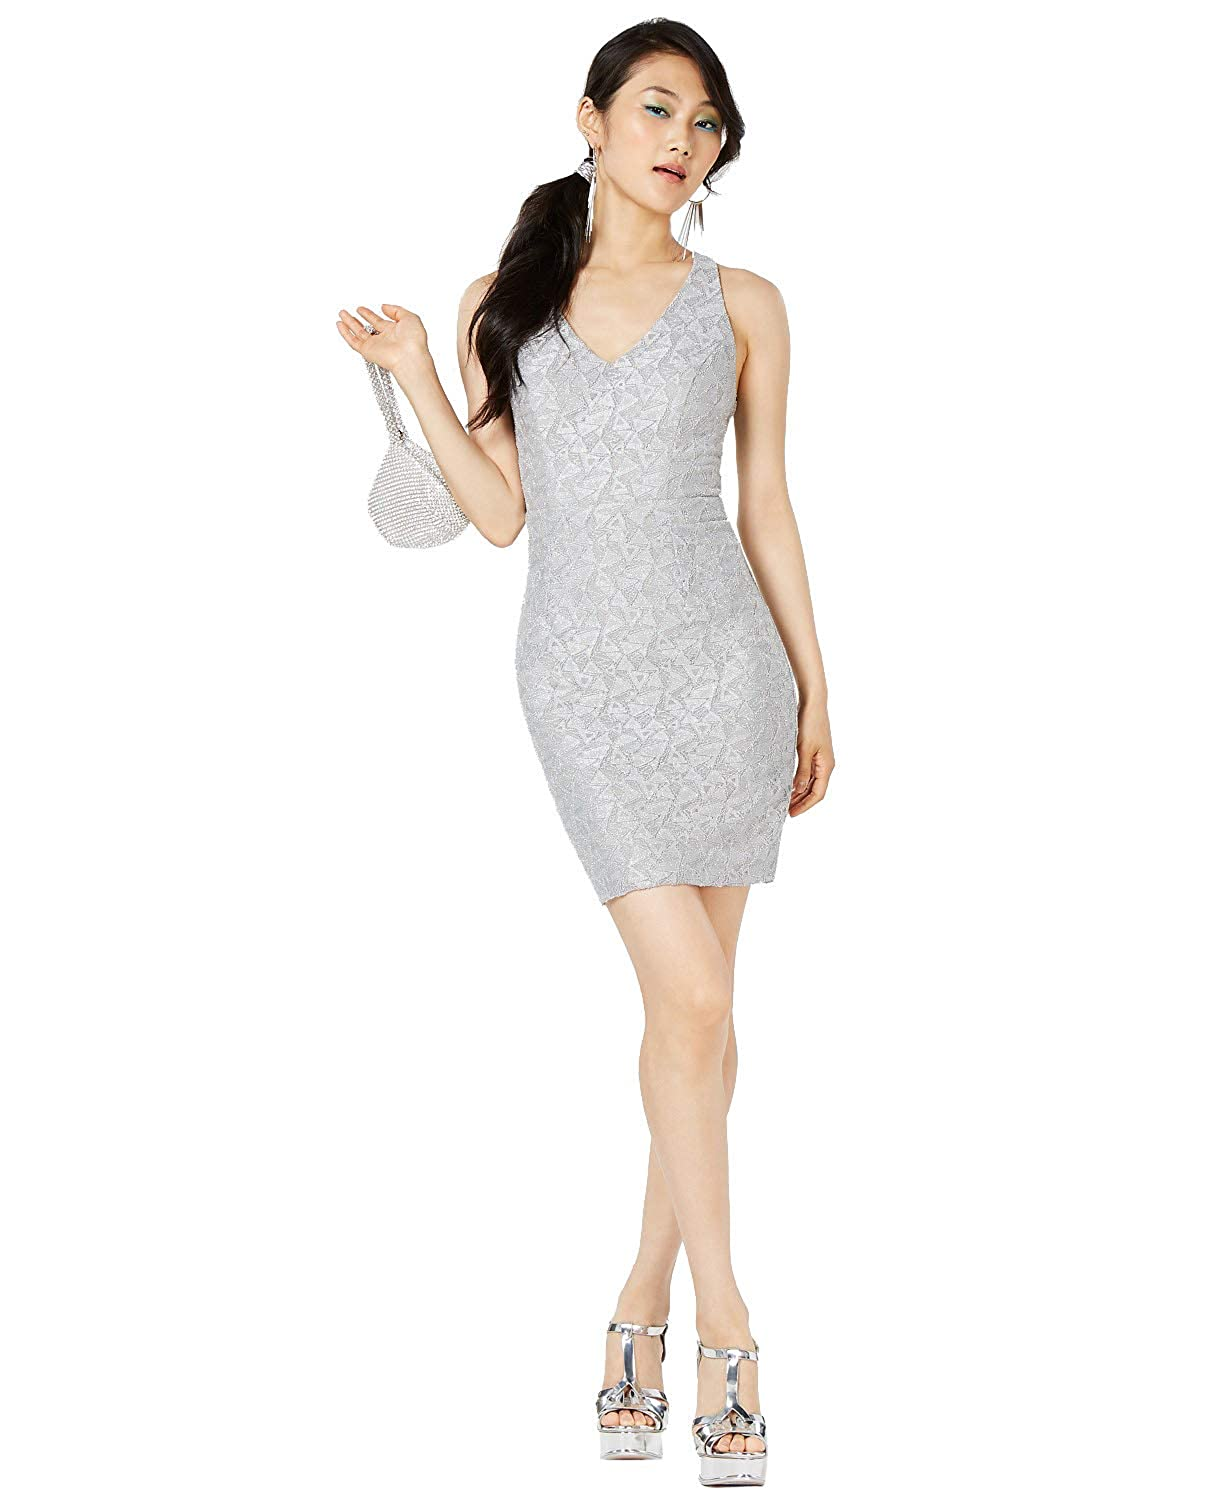 Amazoncom City Studios Juniors Glitter Lace Bodycon Dress